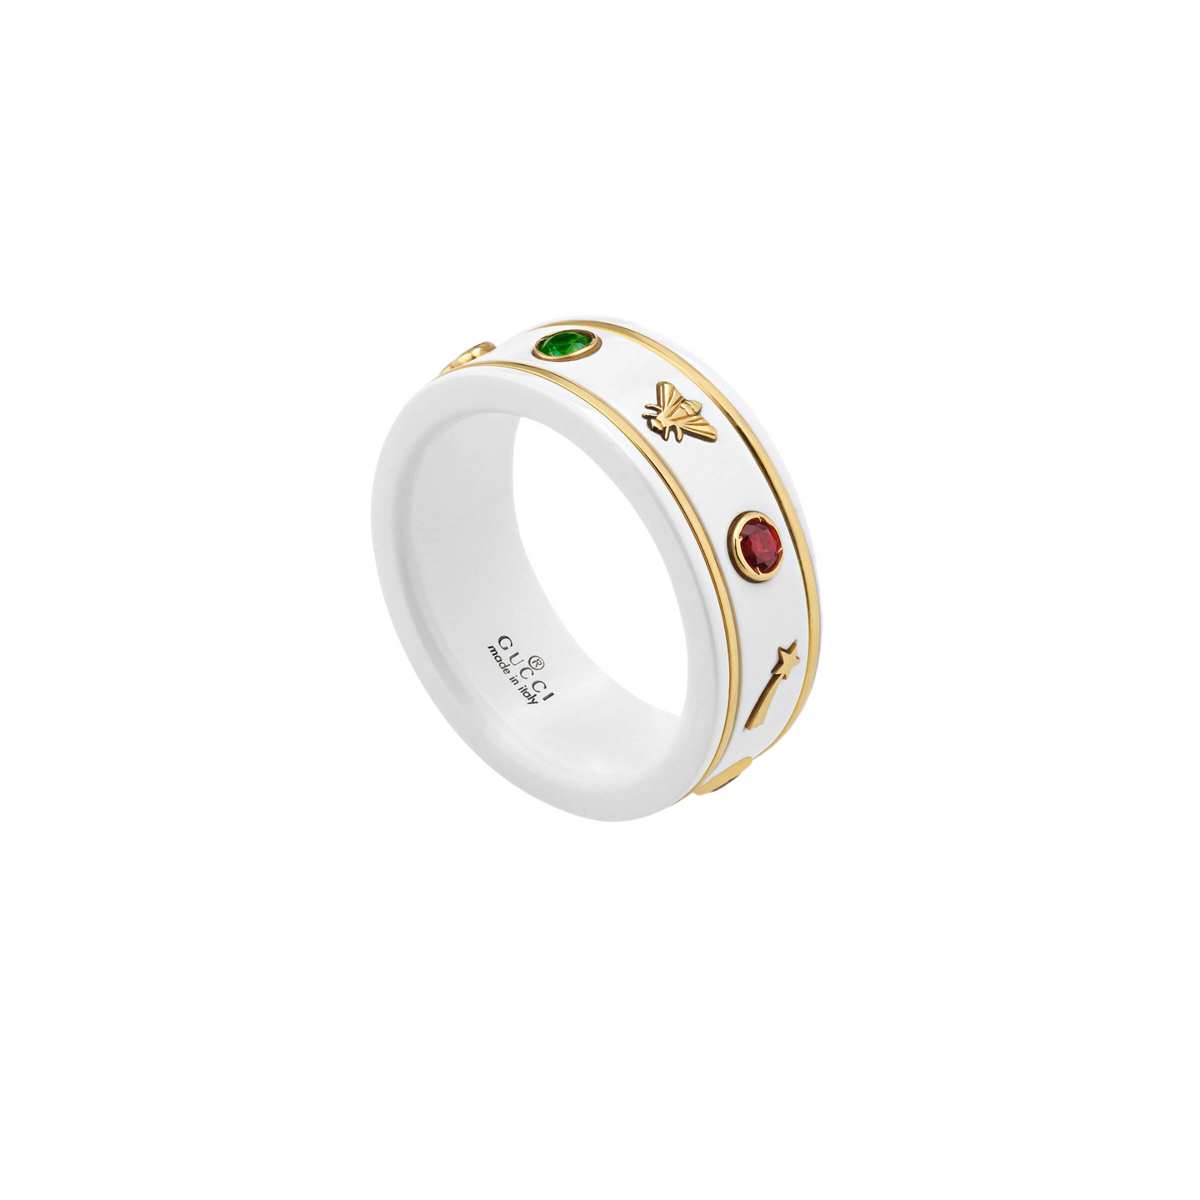 Icon Ring in 18k Yellow Gold and White Zirconia with Multicoloured Gemstones - Orsini Jewellers NZ